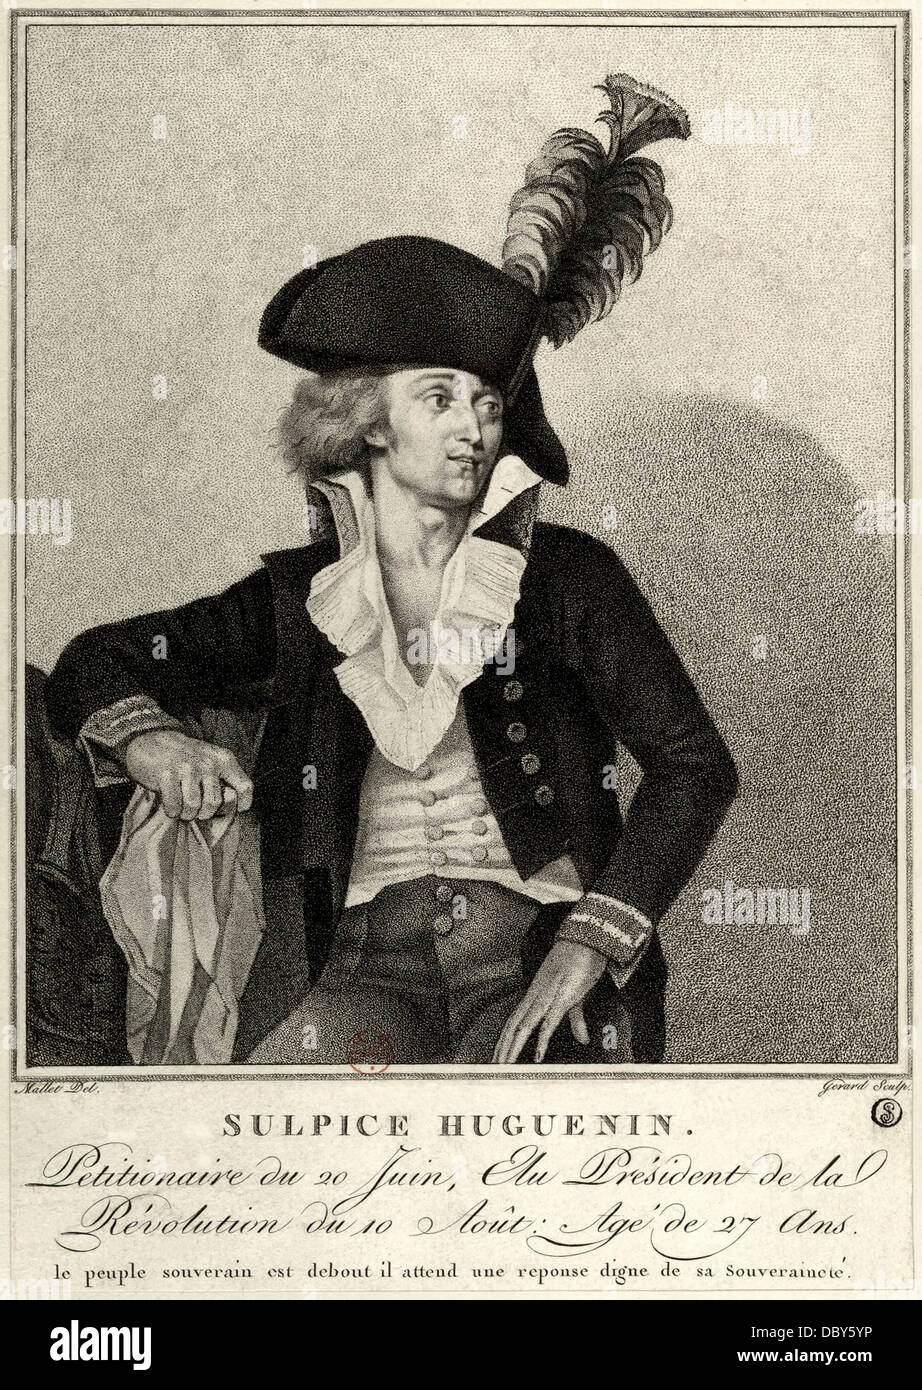 Sulpice Huguenin (1750 - 1803), French revolutionary. - Stock Image